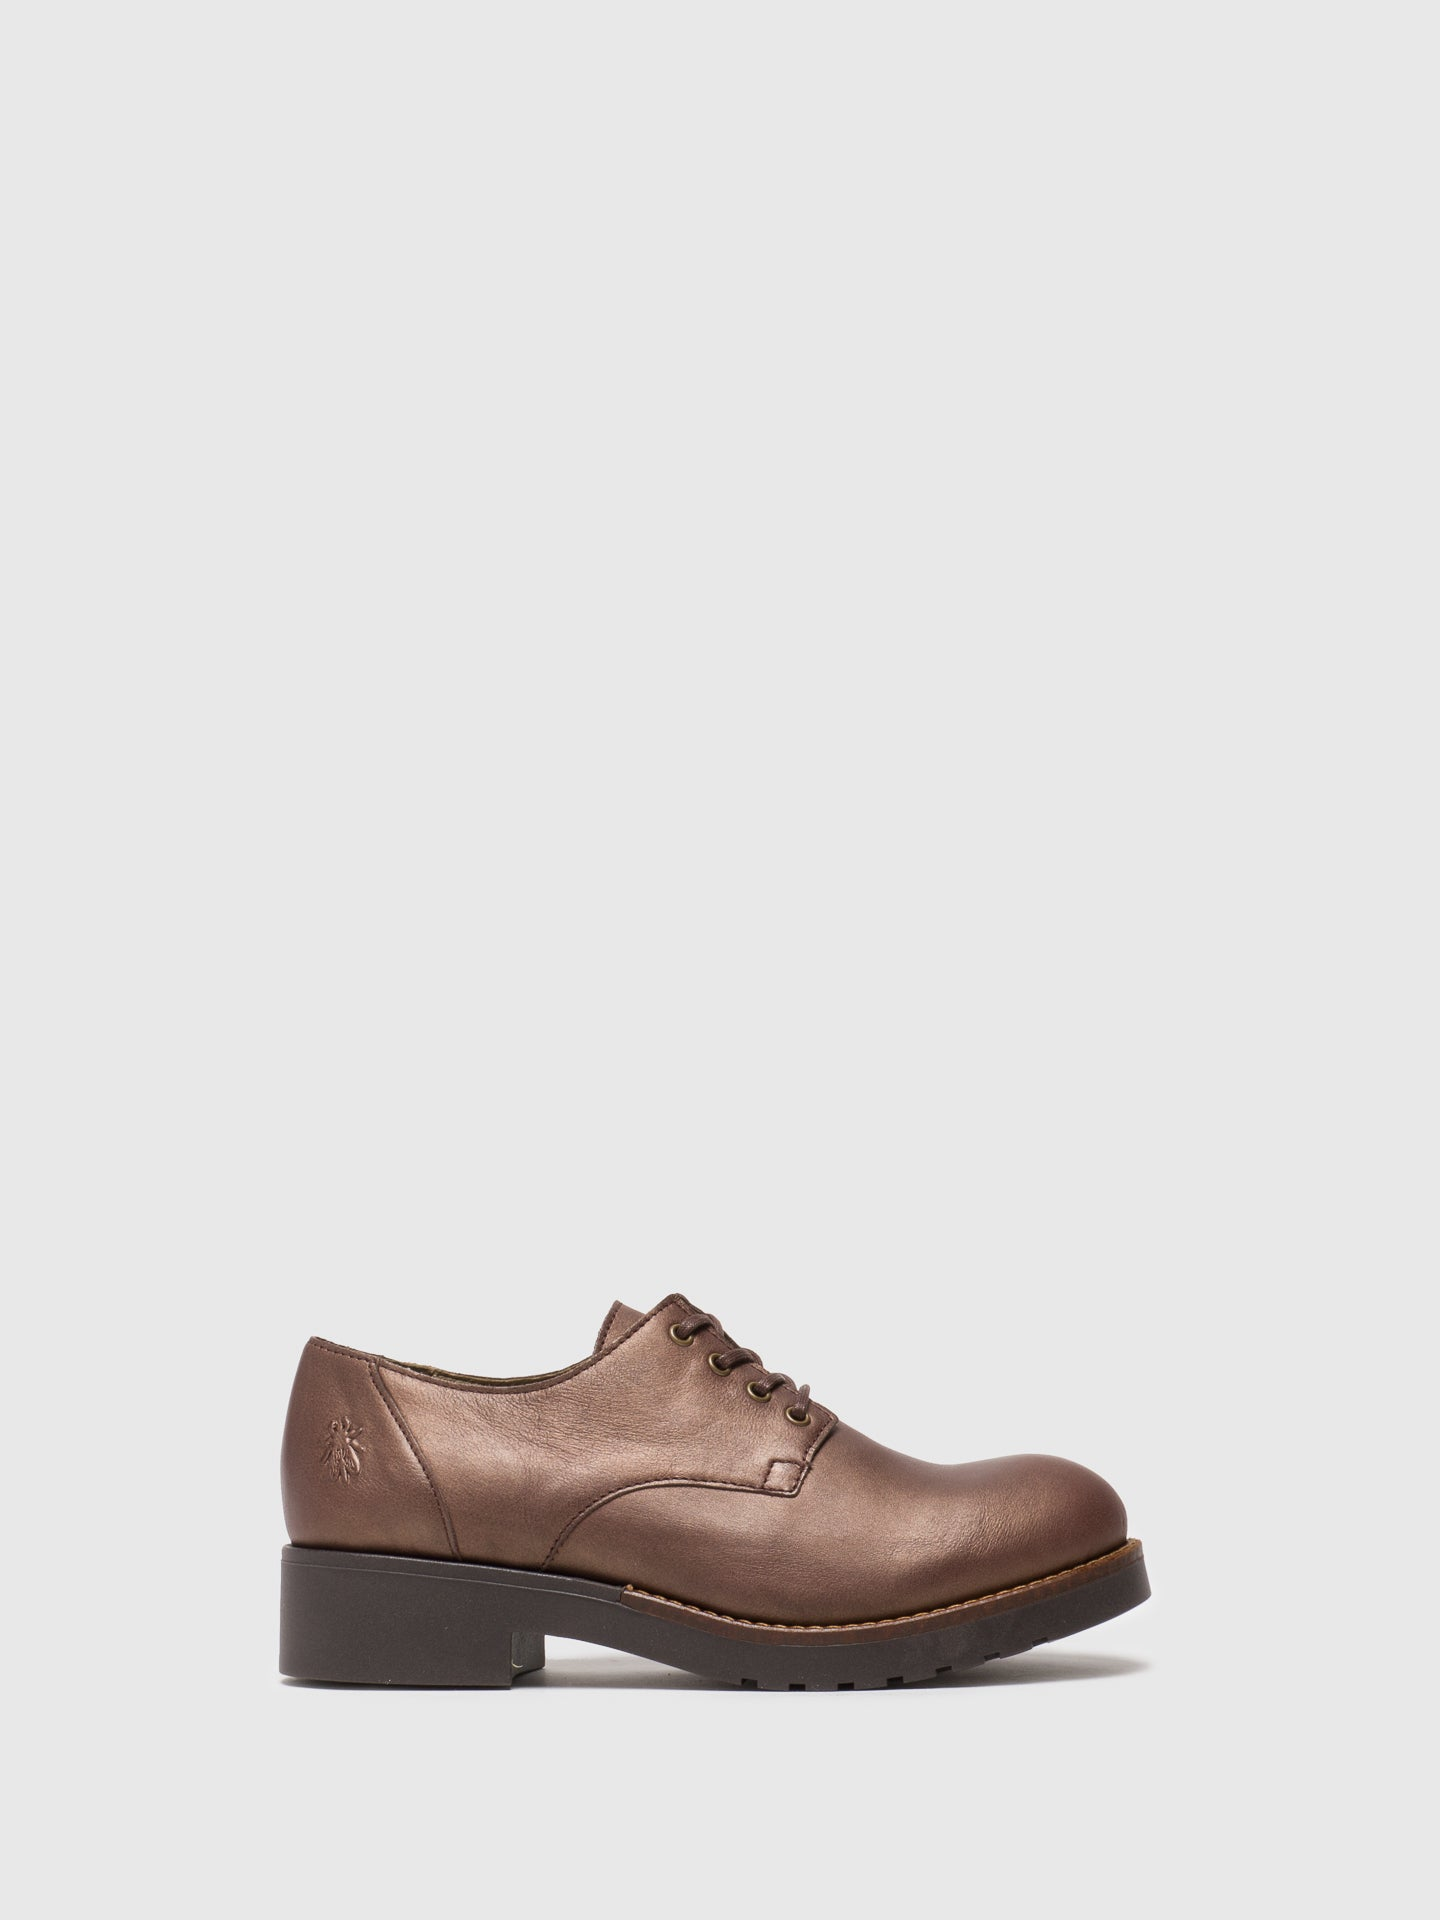 Fly London Brown Lace-up Shoes